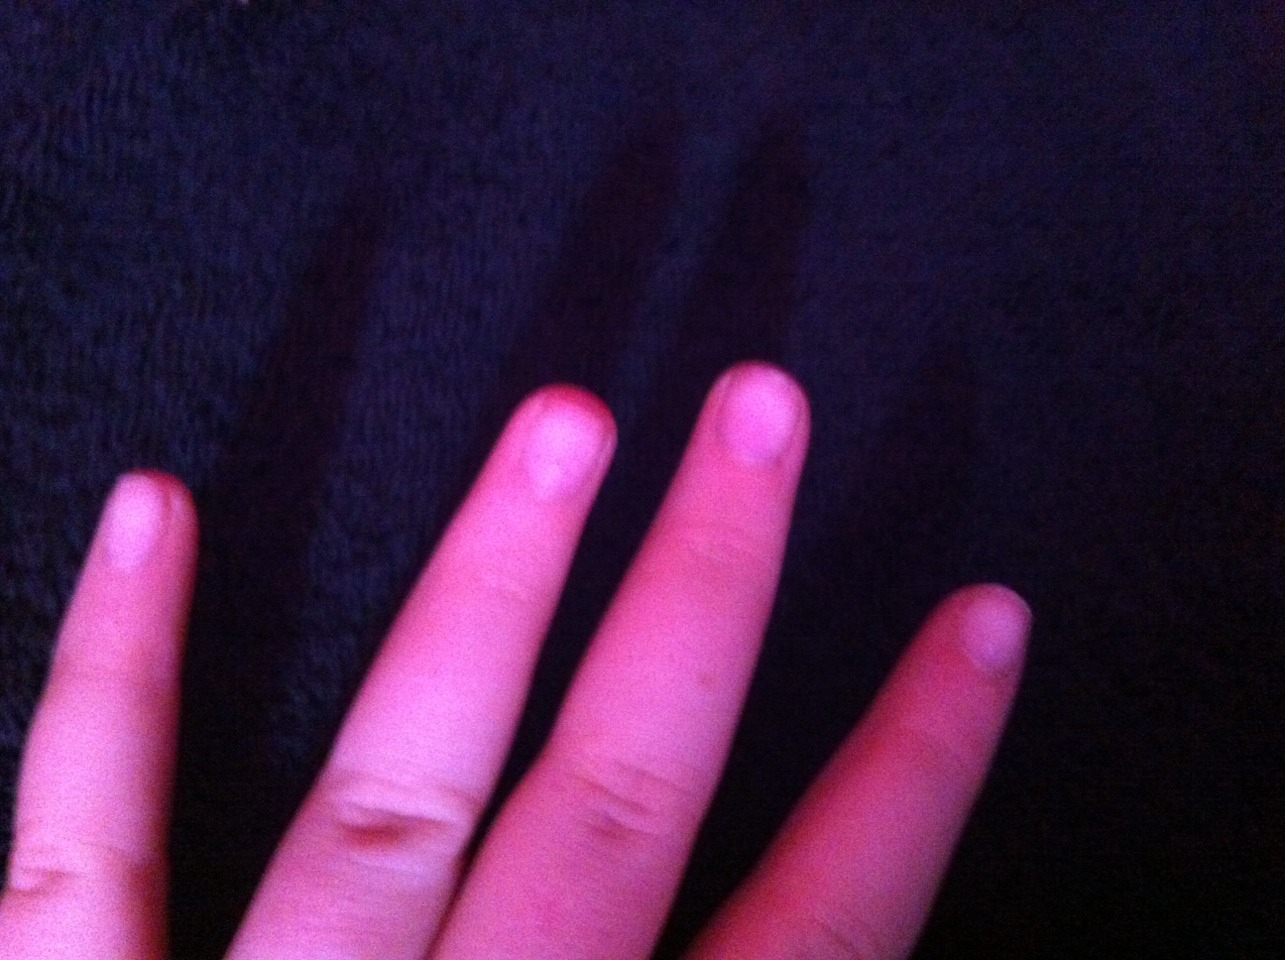 Make sure nails are cut about the same length (doesn't have to be perfect